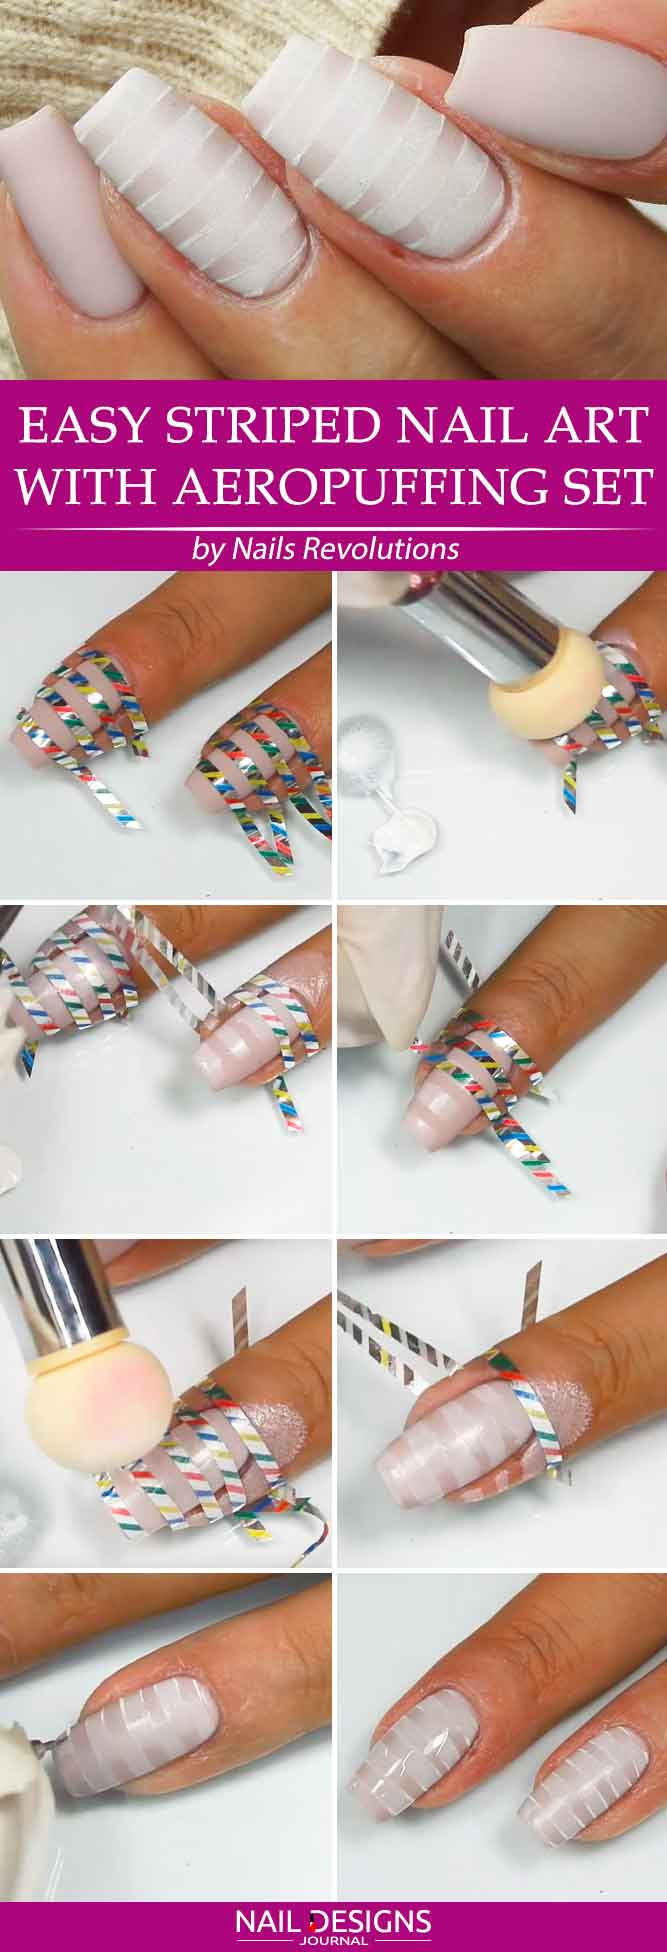 Easy Striped Nail Art With Aeropuffing Set